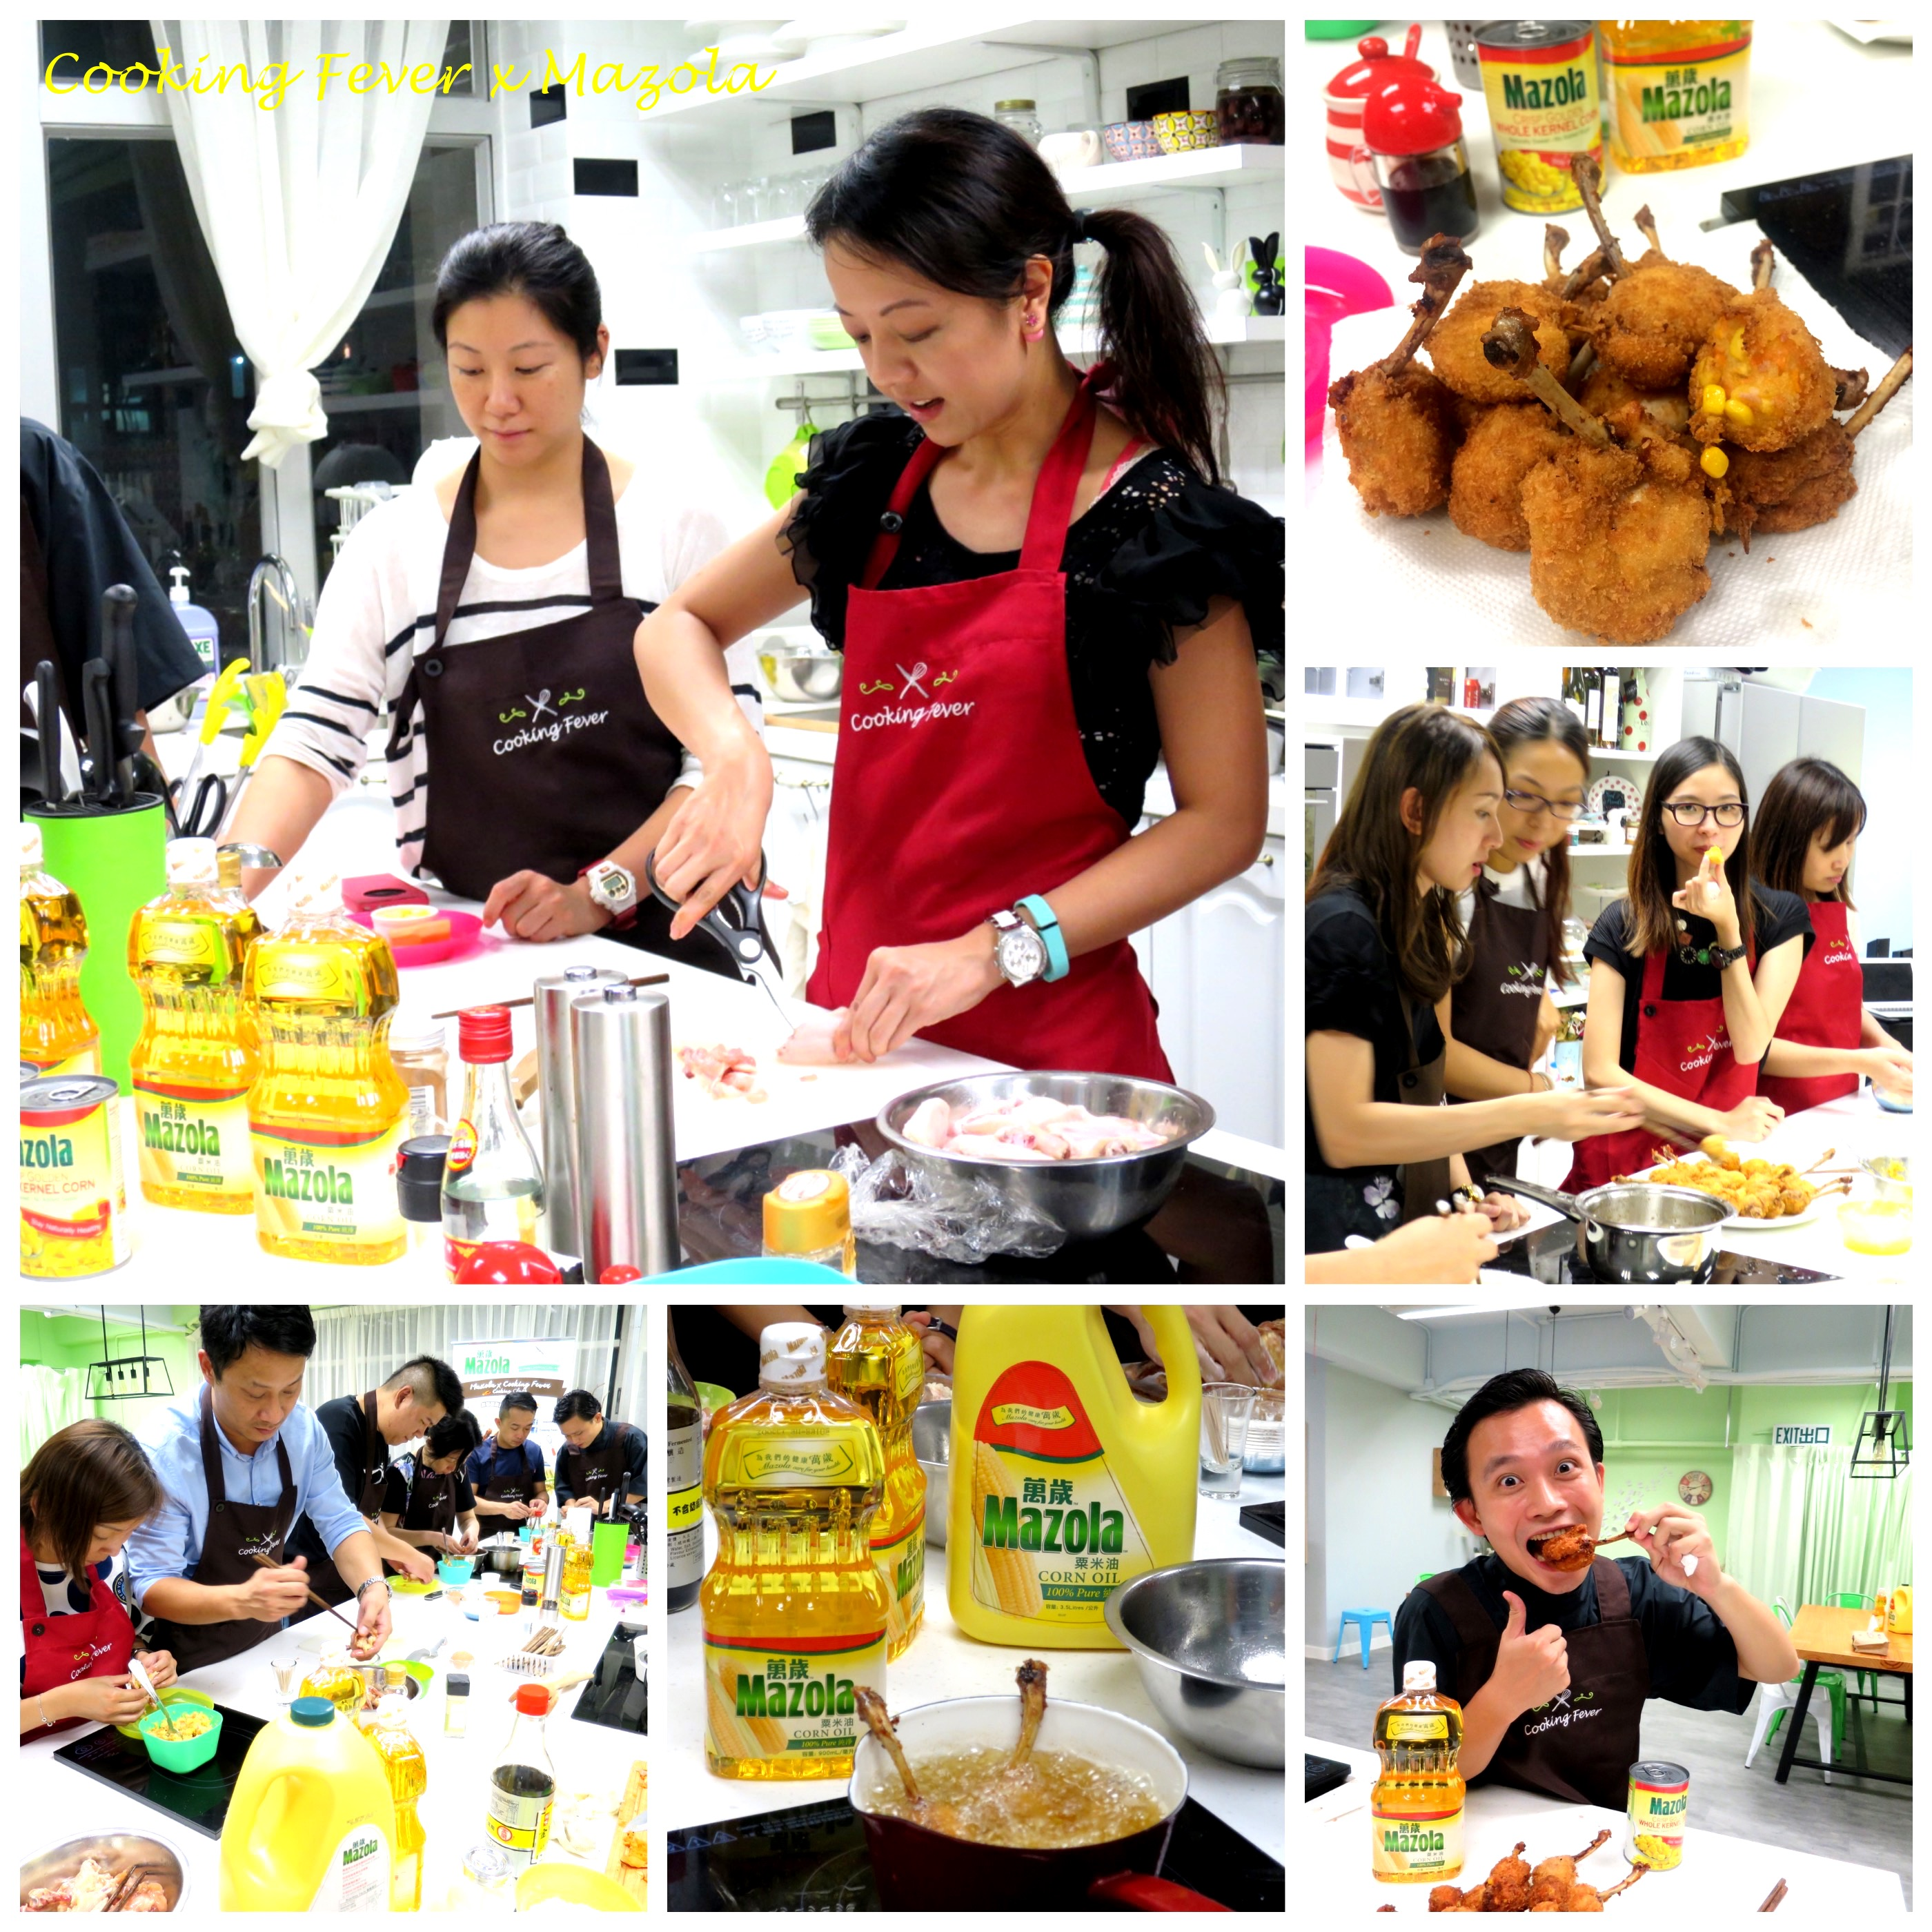 Mazola Cooking Class 2015